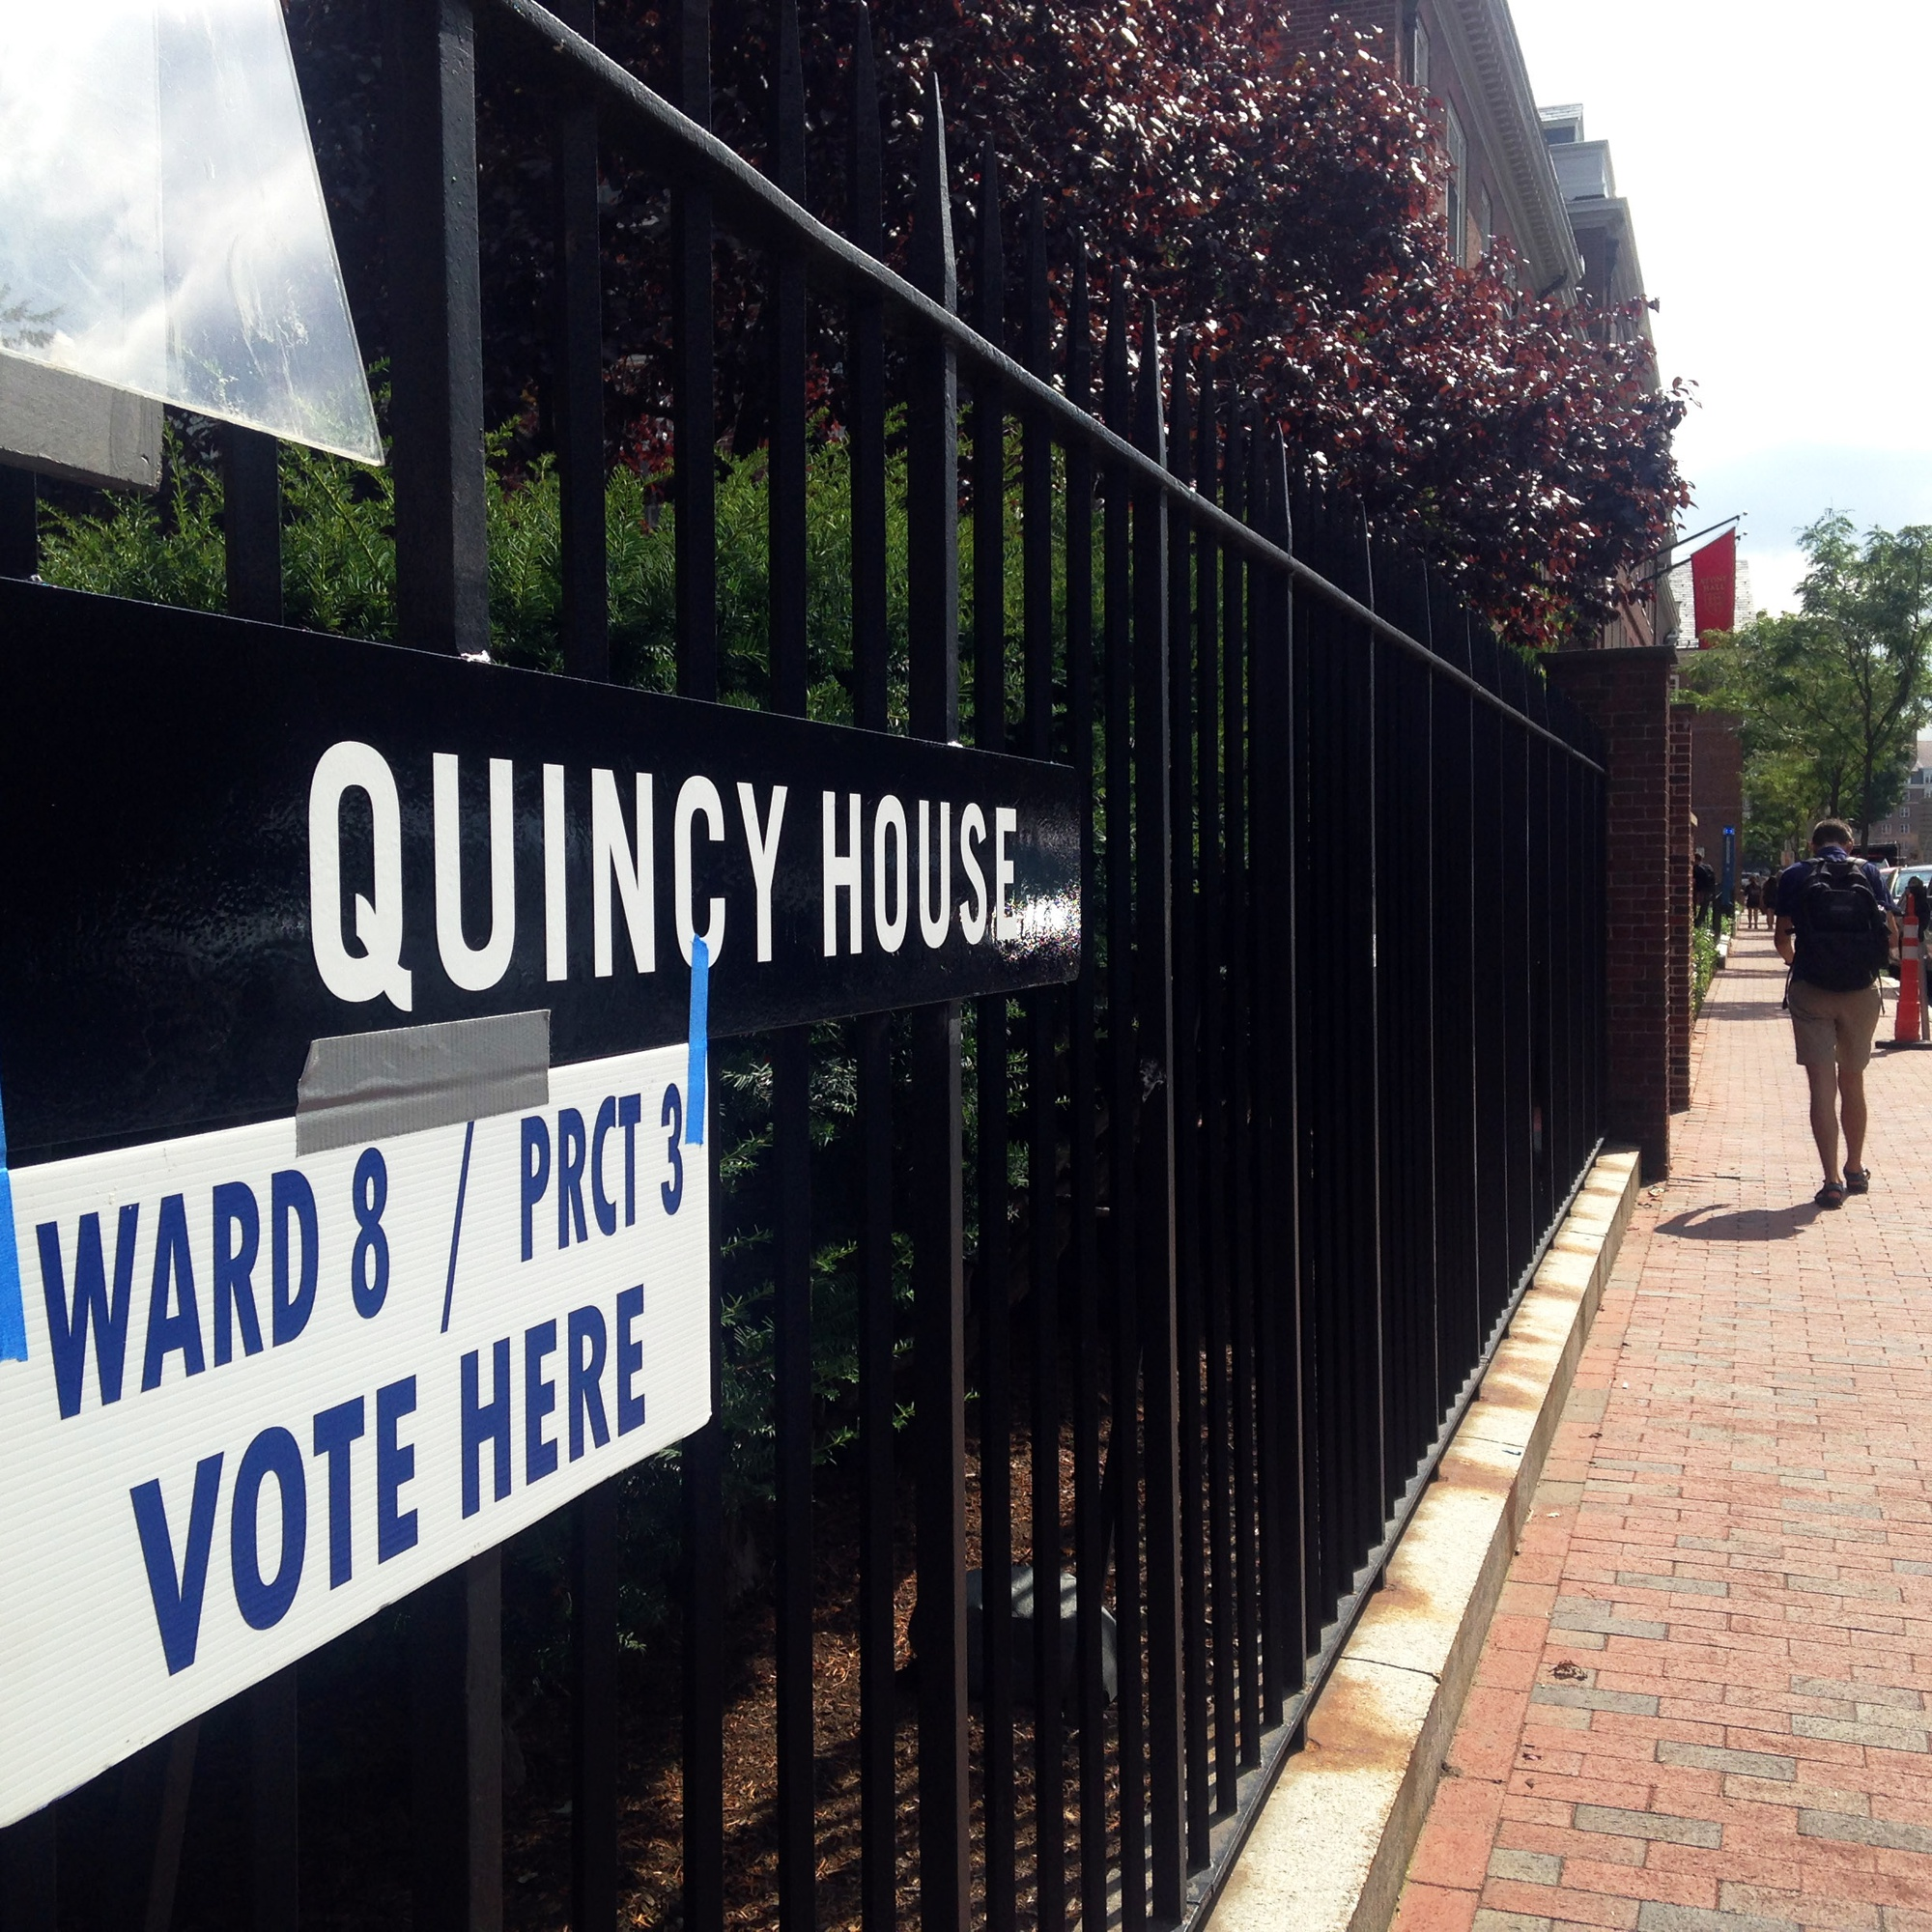 A student walks past the polling place set up in Quincy House for the Massachusetts Primary.